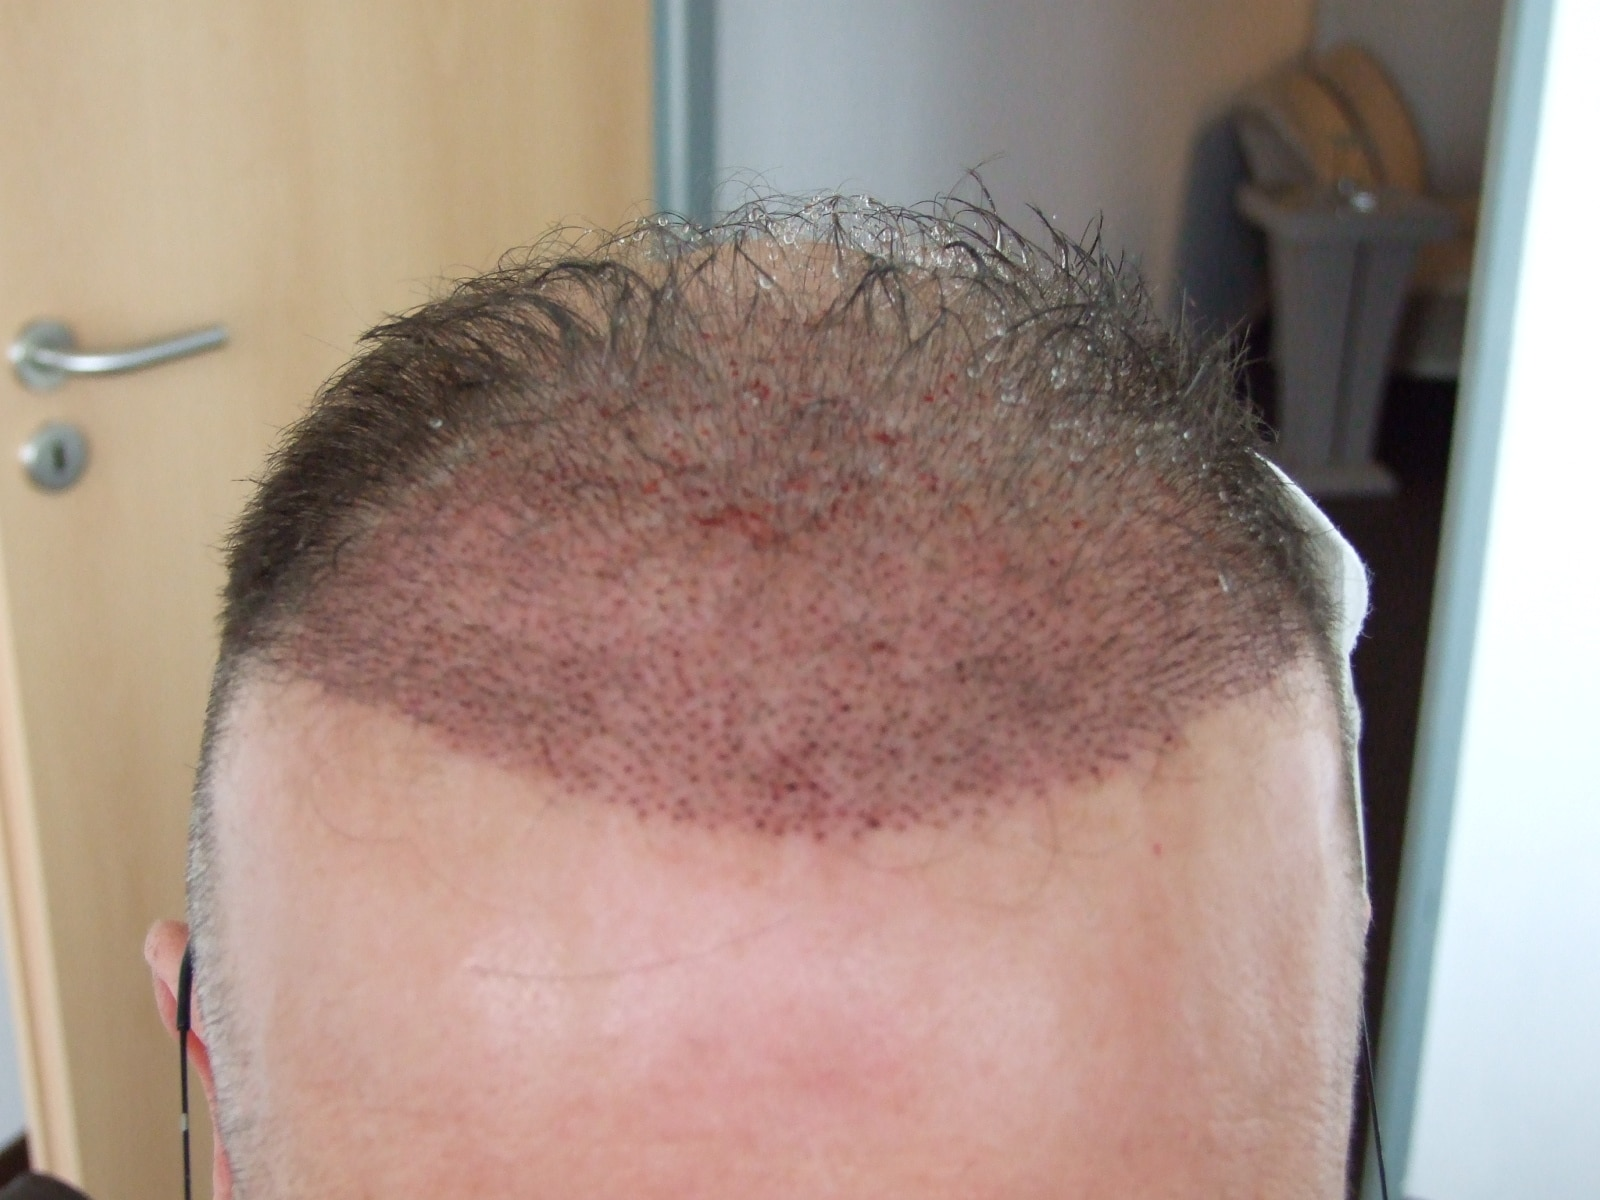 Patient's head after the hair transplant.